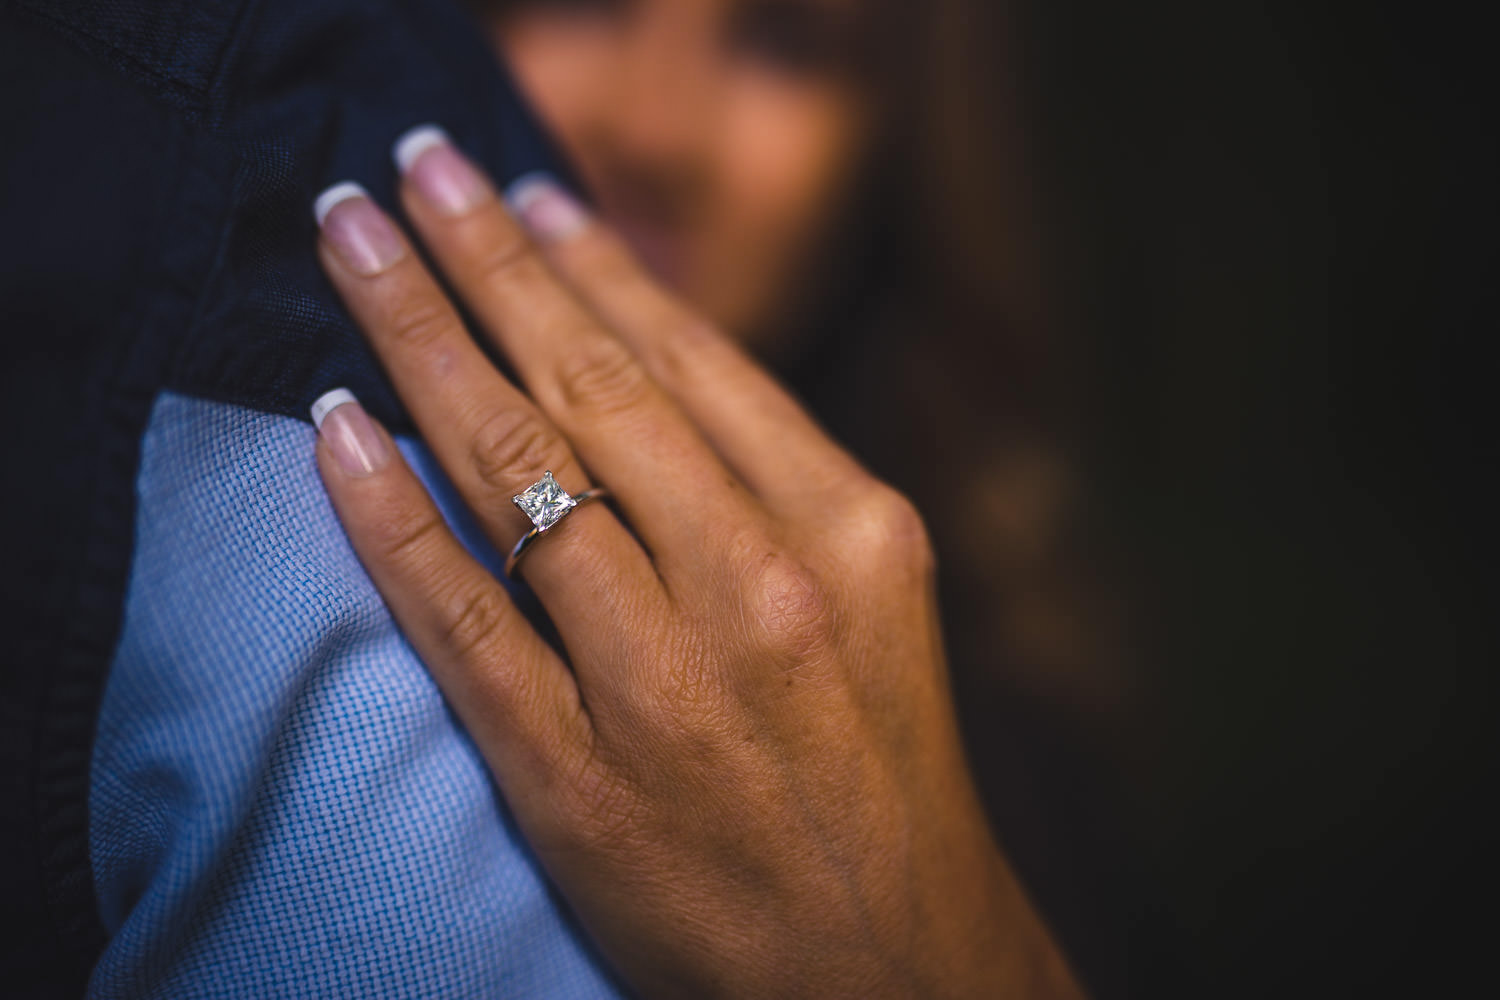 Woman's hand on man's shoulder showing off engagement ring